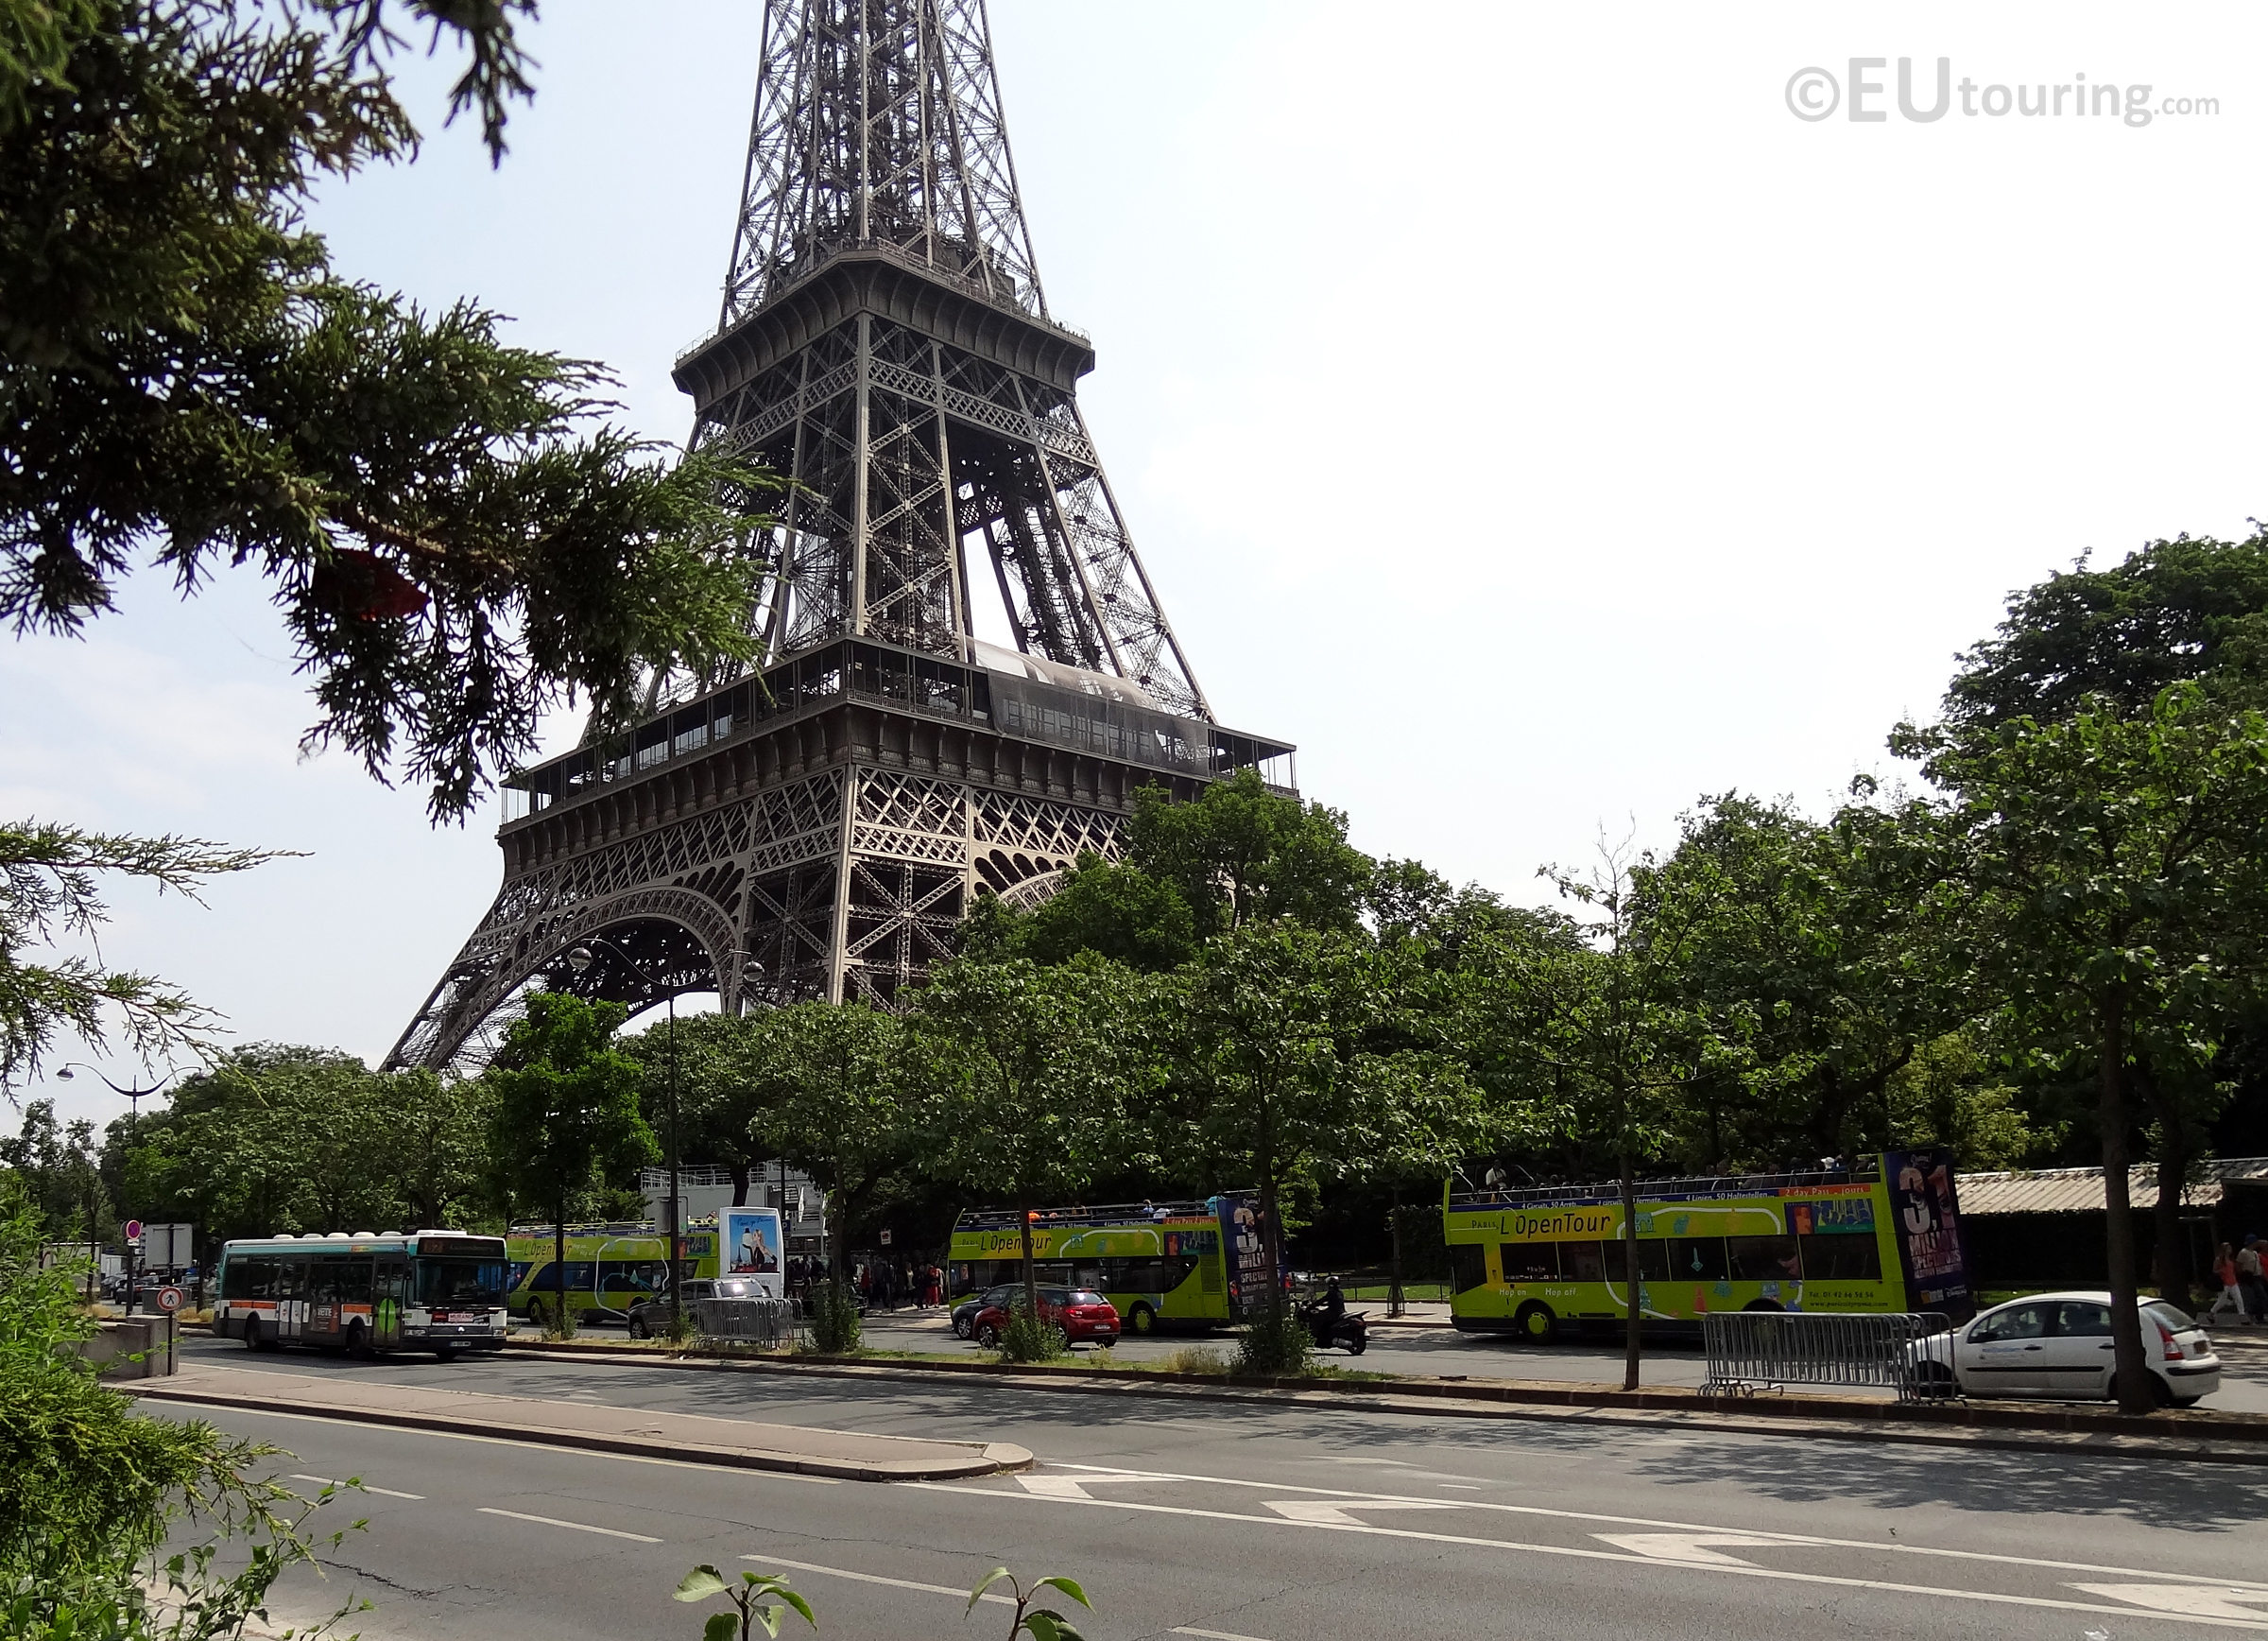 l'OpenTour stop beside the Eiffel Tower